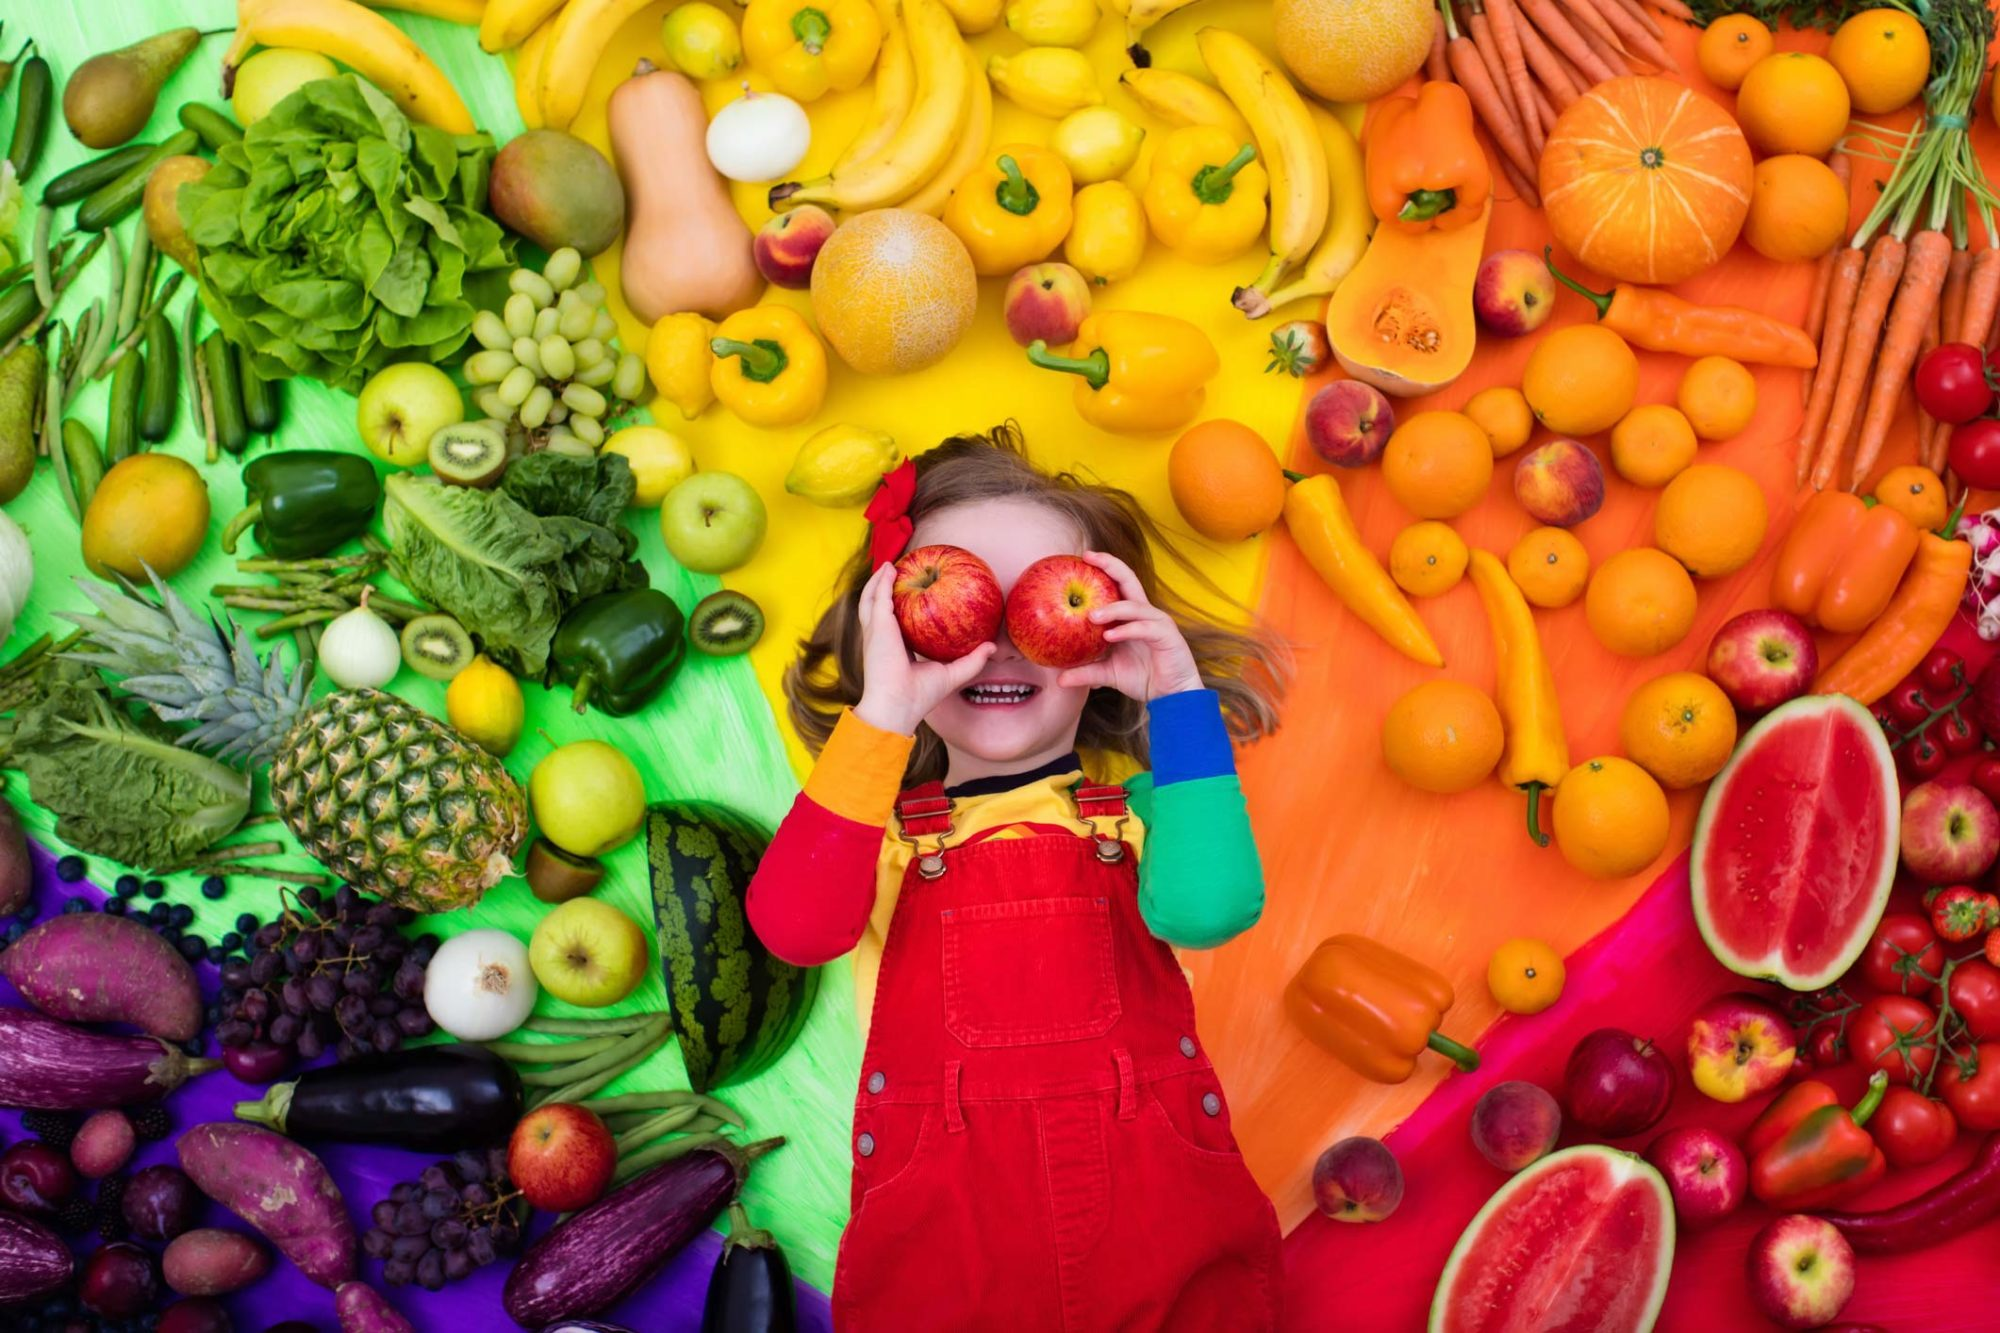 Young girl using apples for eyes surrounded by a rainbow of fruits and vegetables